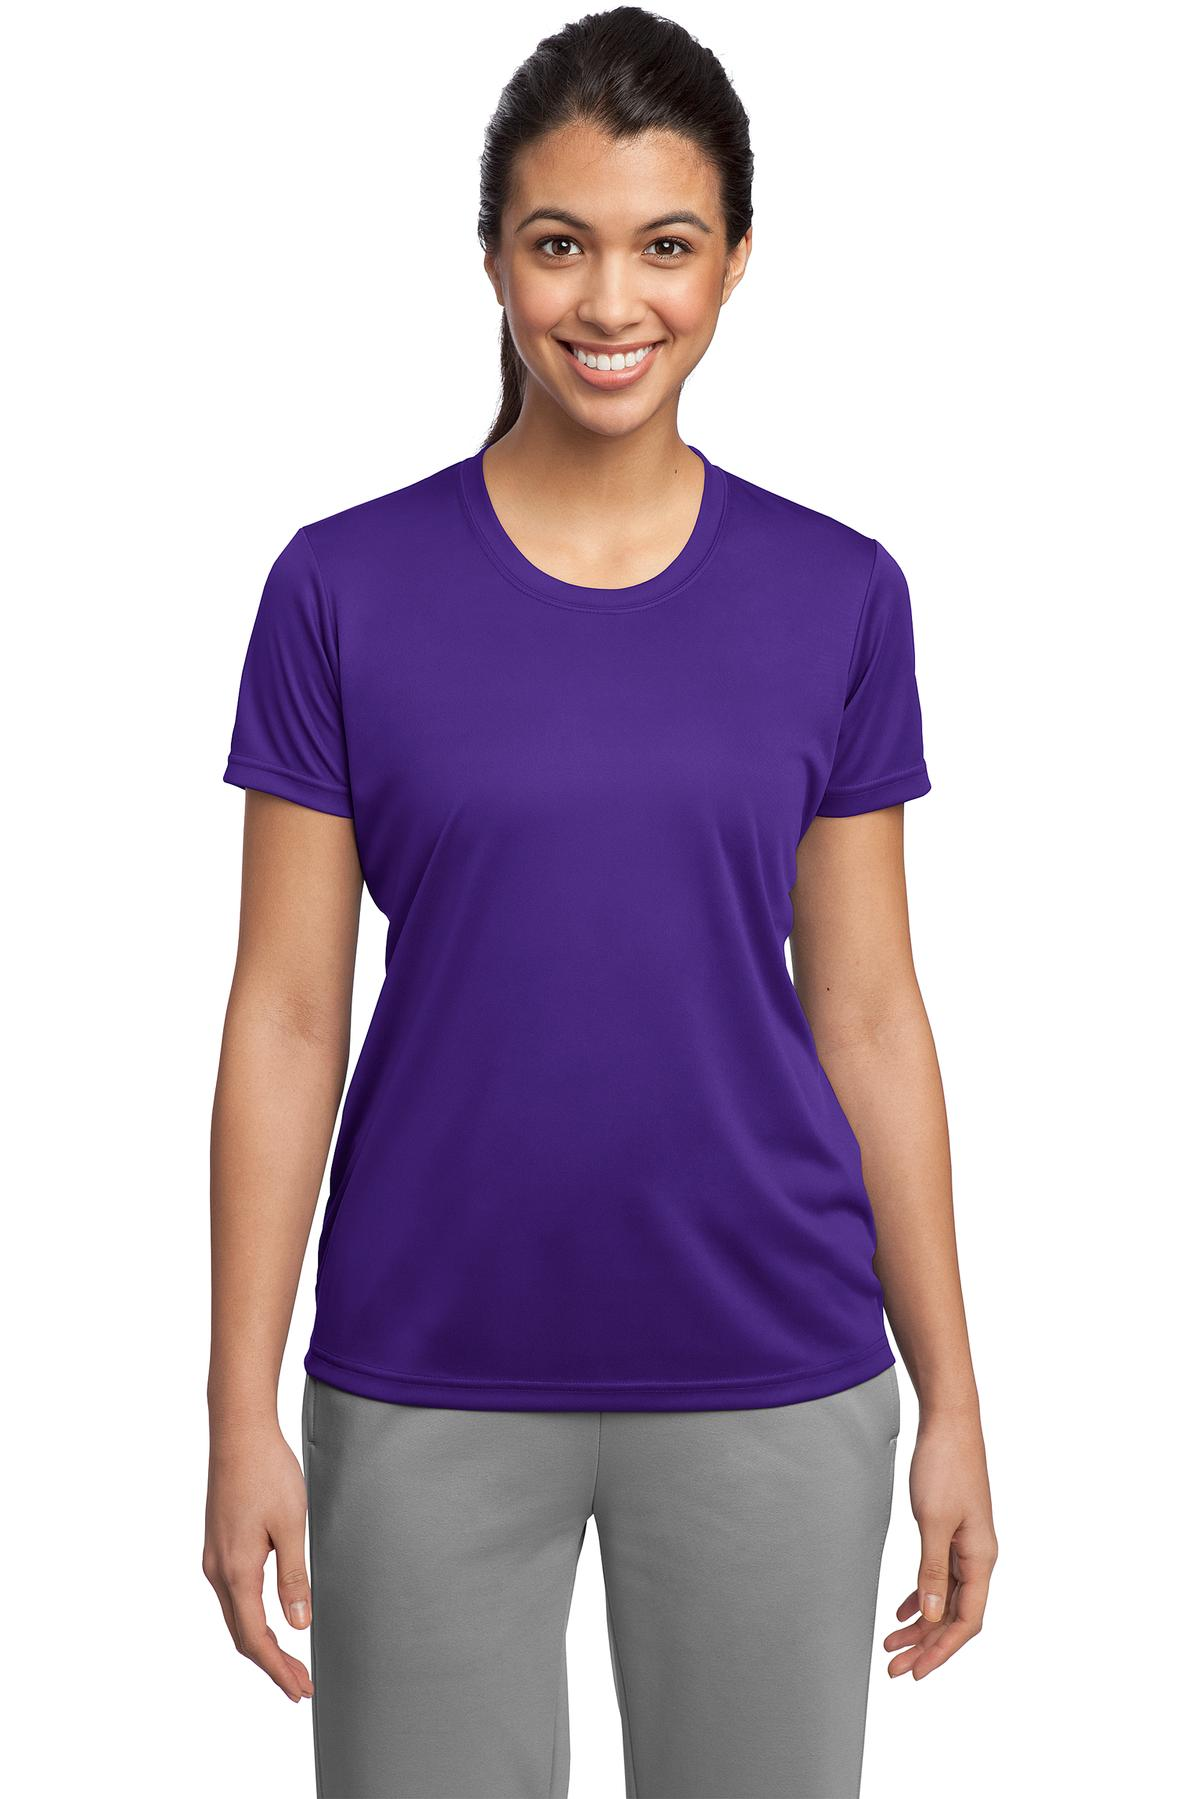 Sport-Tek ®  Ladies PosiCharge ®  Competitor™ Tee. LST350 - Purple